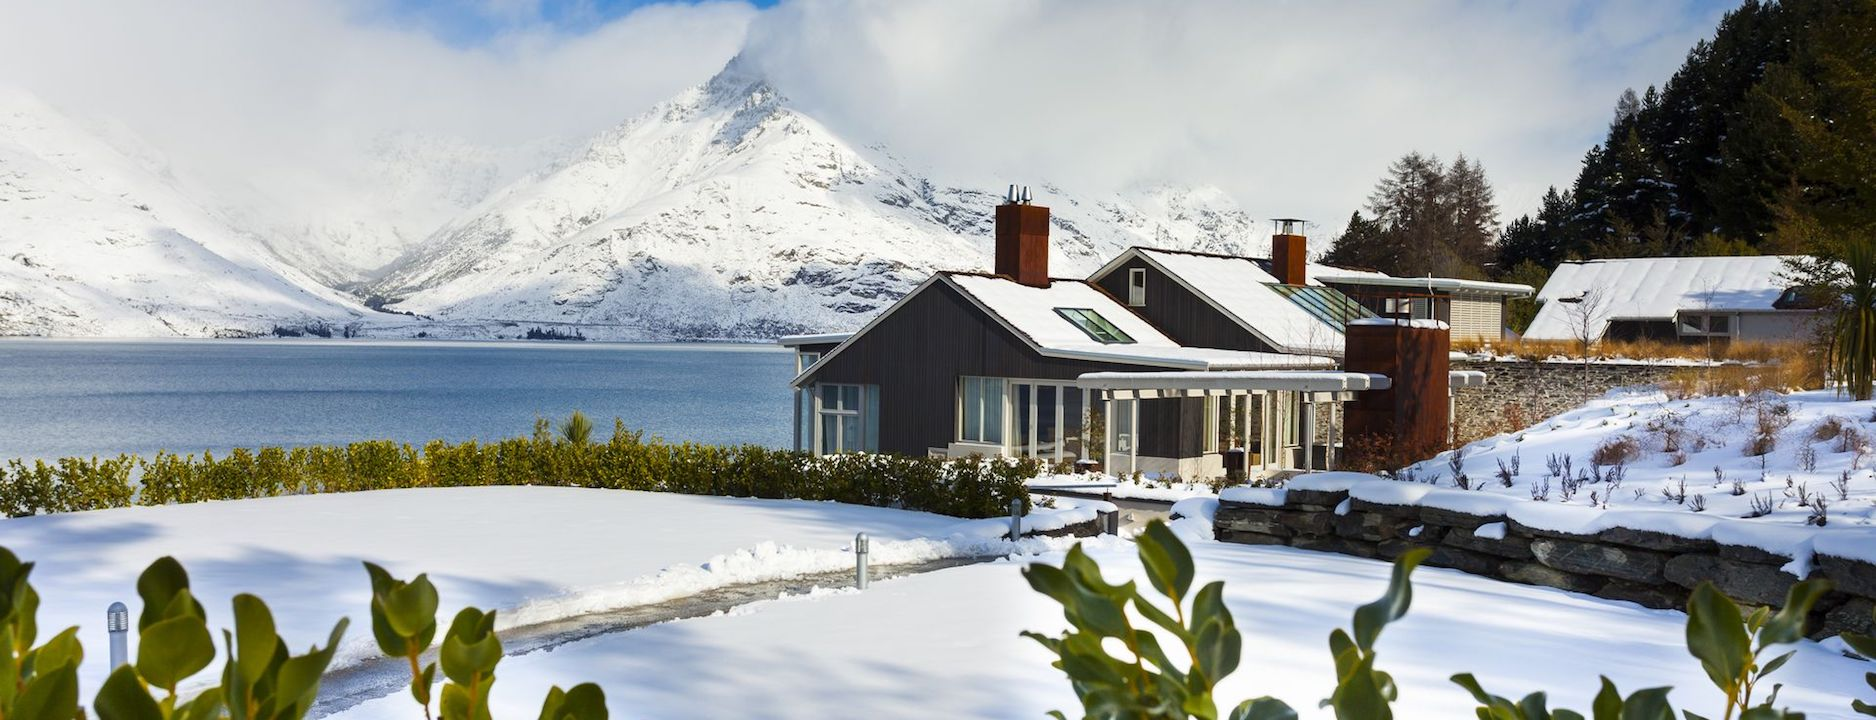 Robertson luxurious Lodges Matakauri Lodge , Queenstown / New Zealand